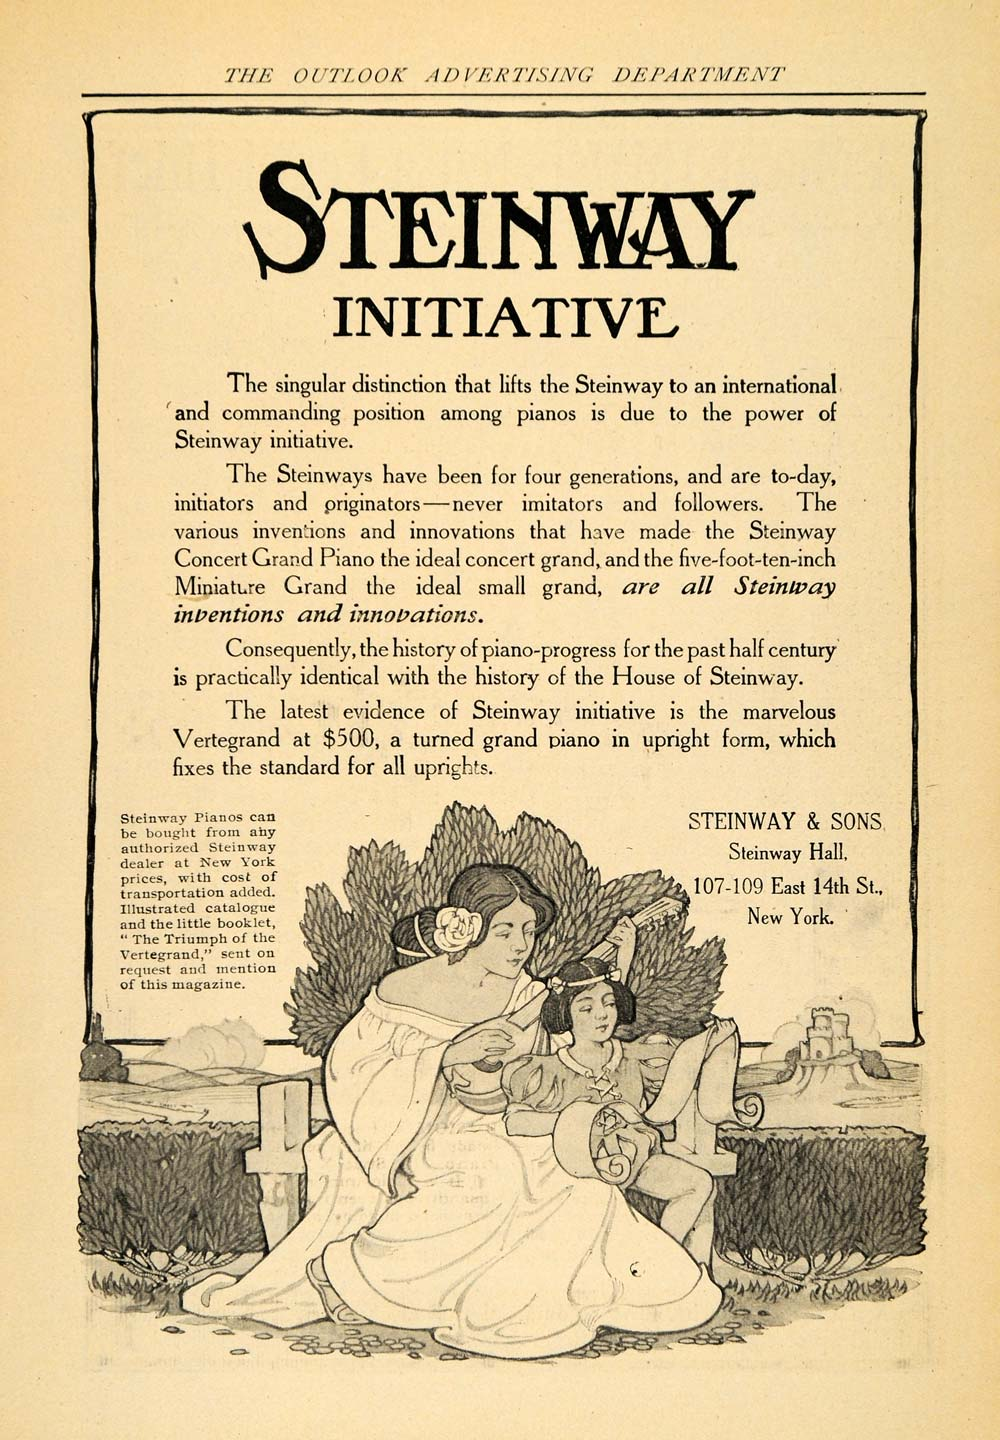 1907 Ad Steinway Pianos Vertegrand Art Nouveau - ORIGINAL ADVERTISING TOM1